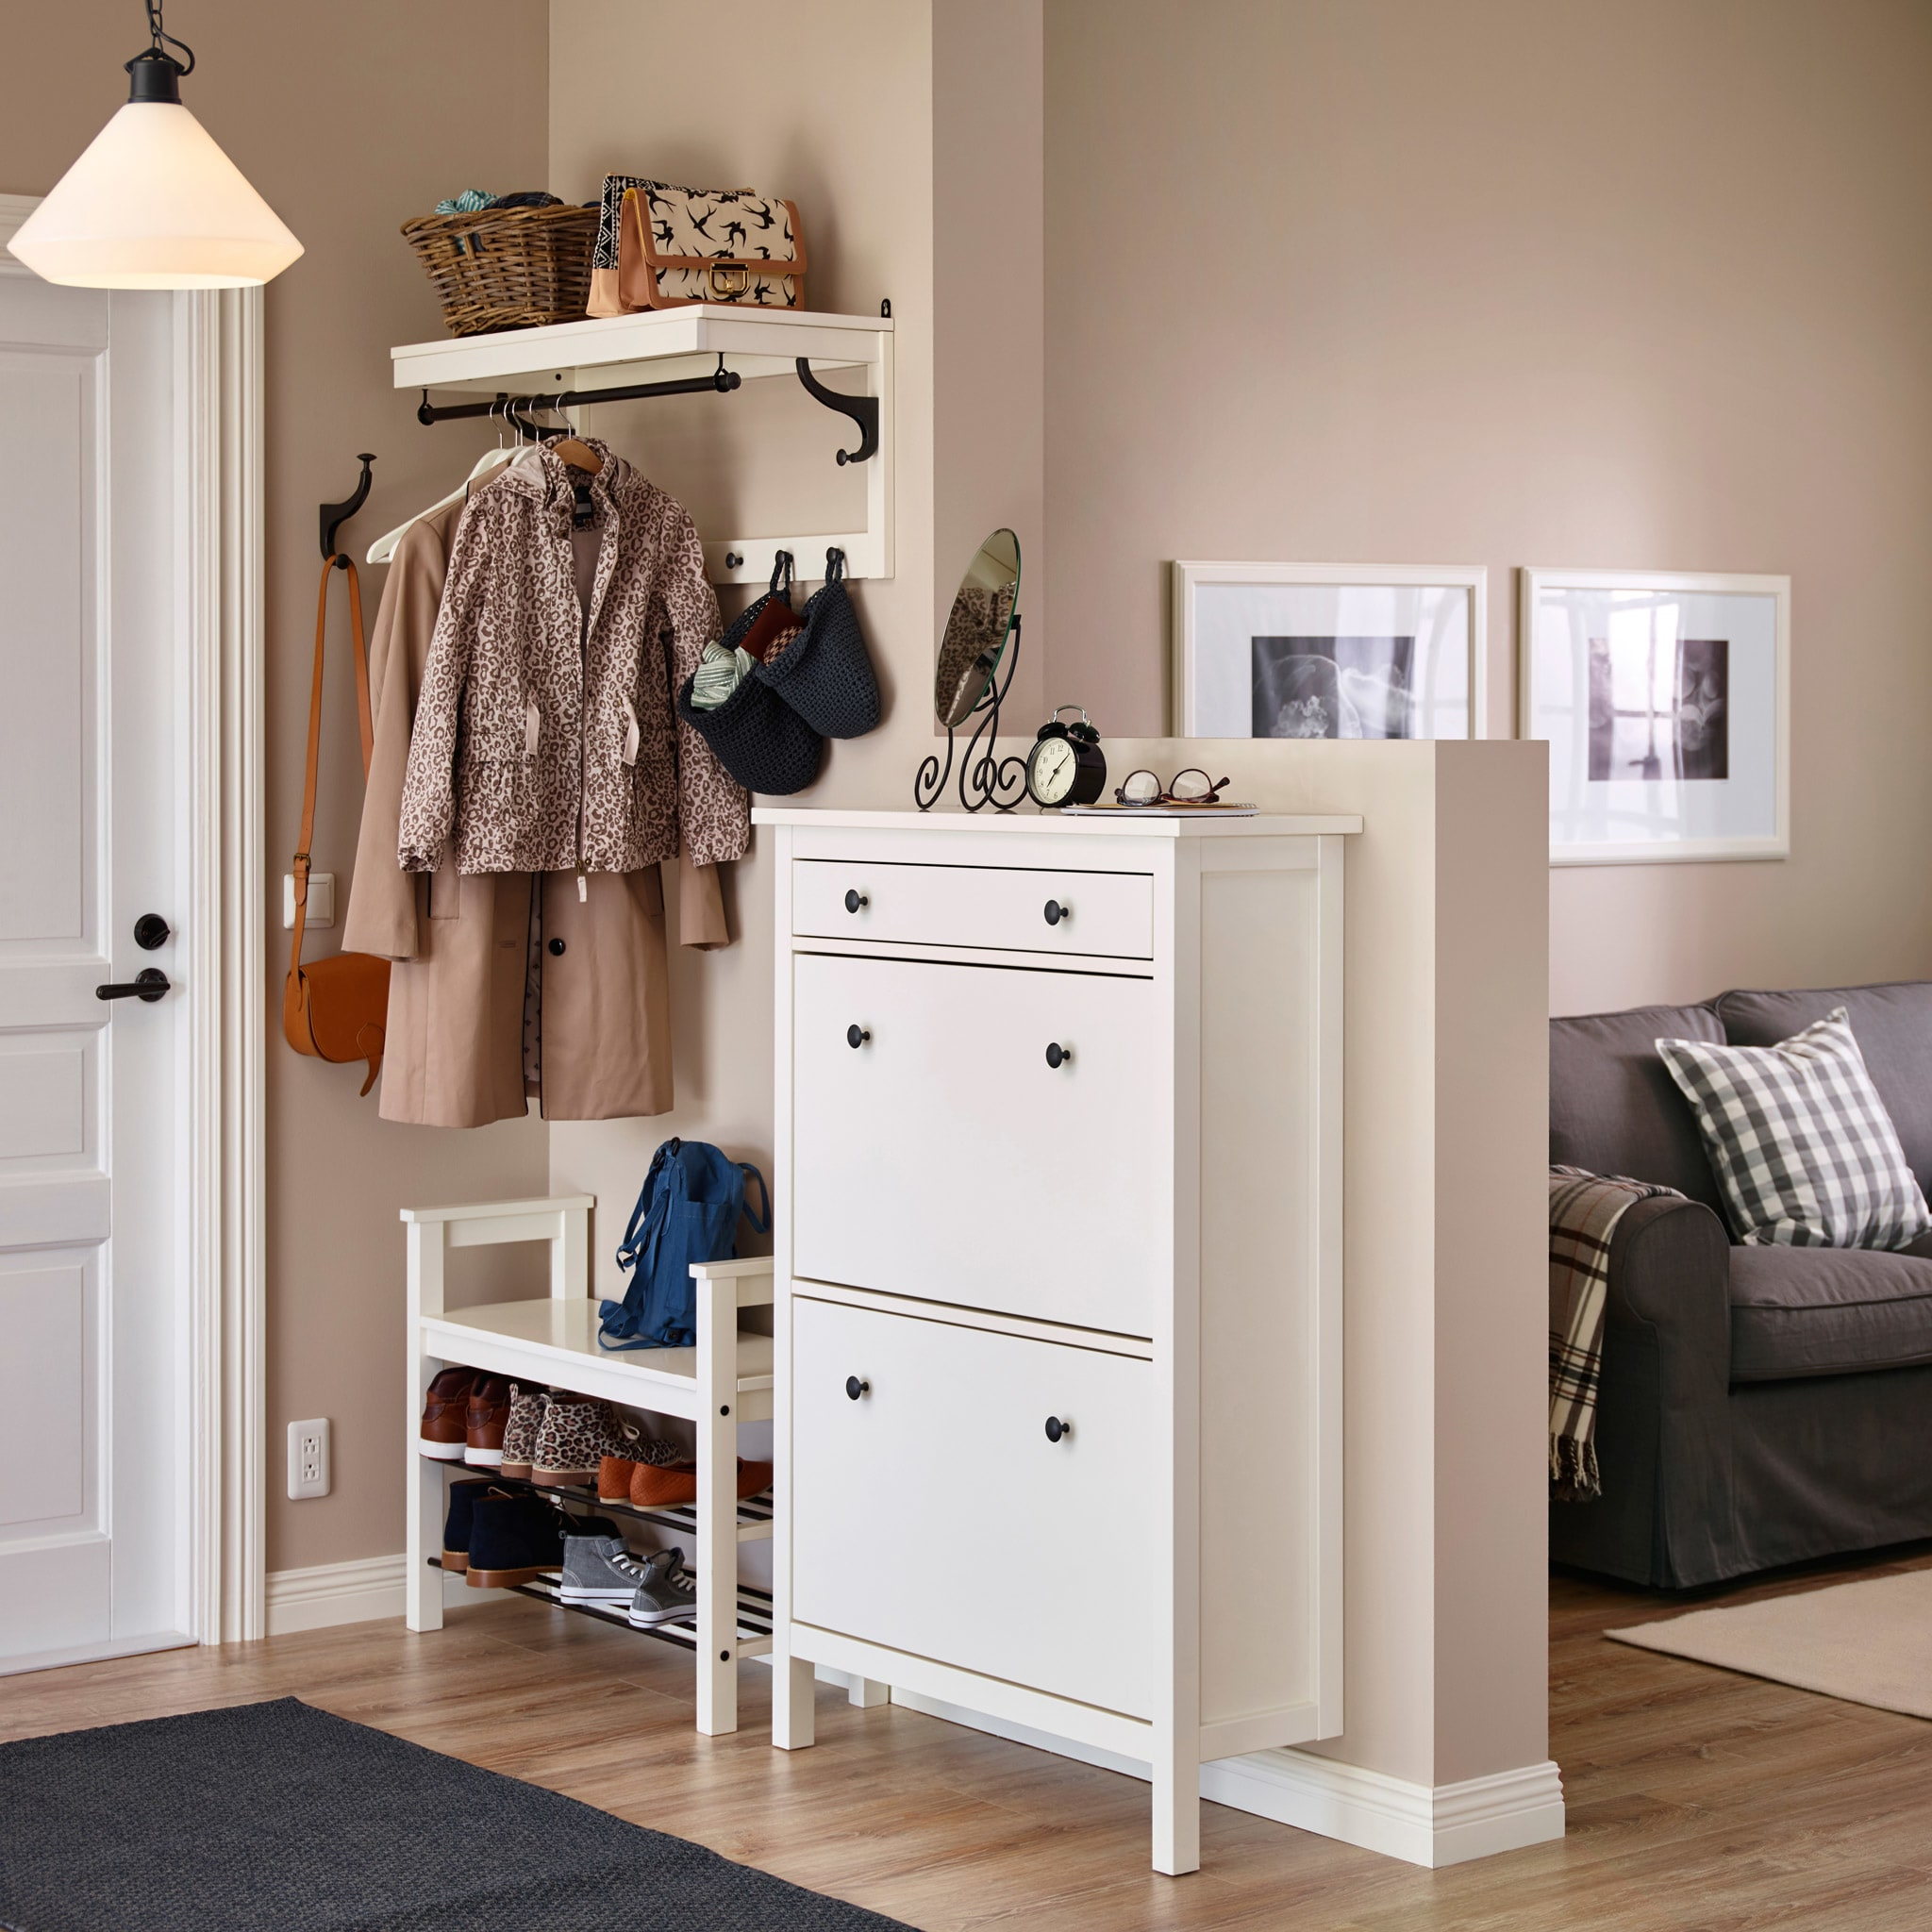 Beautiful Entrance Hall Tables For Sale Of A Small Hallway With A White Shoe